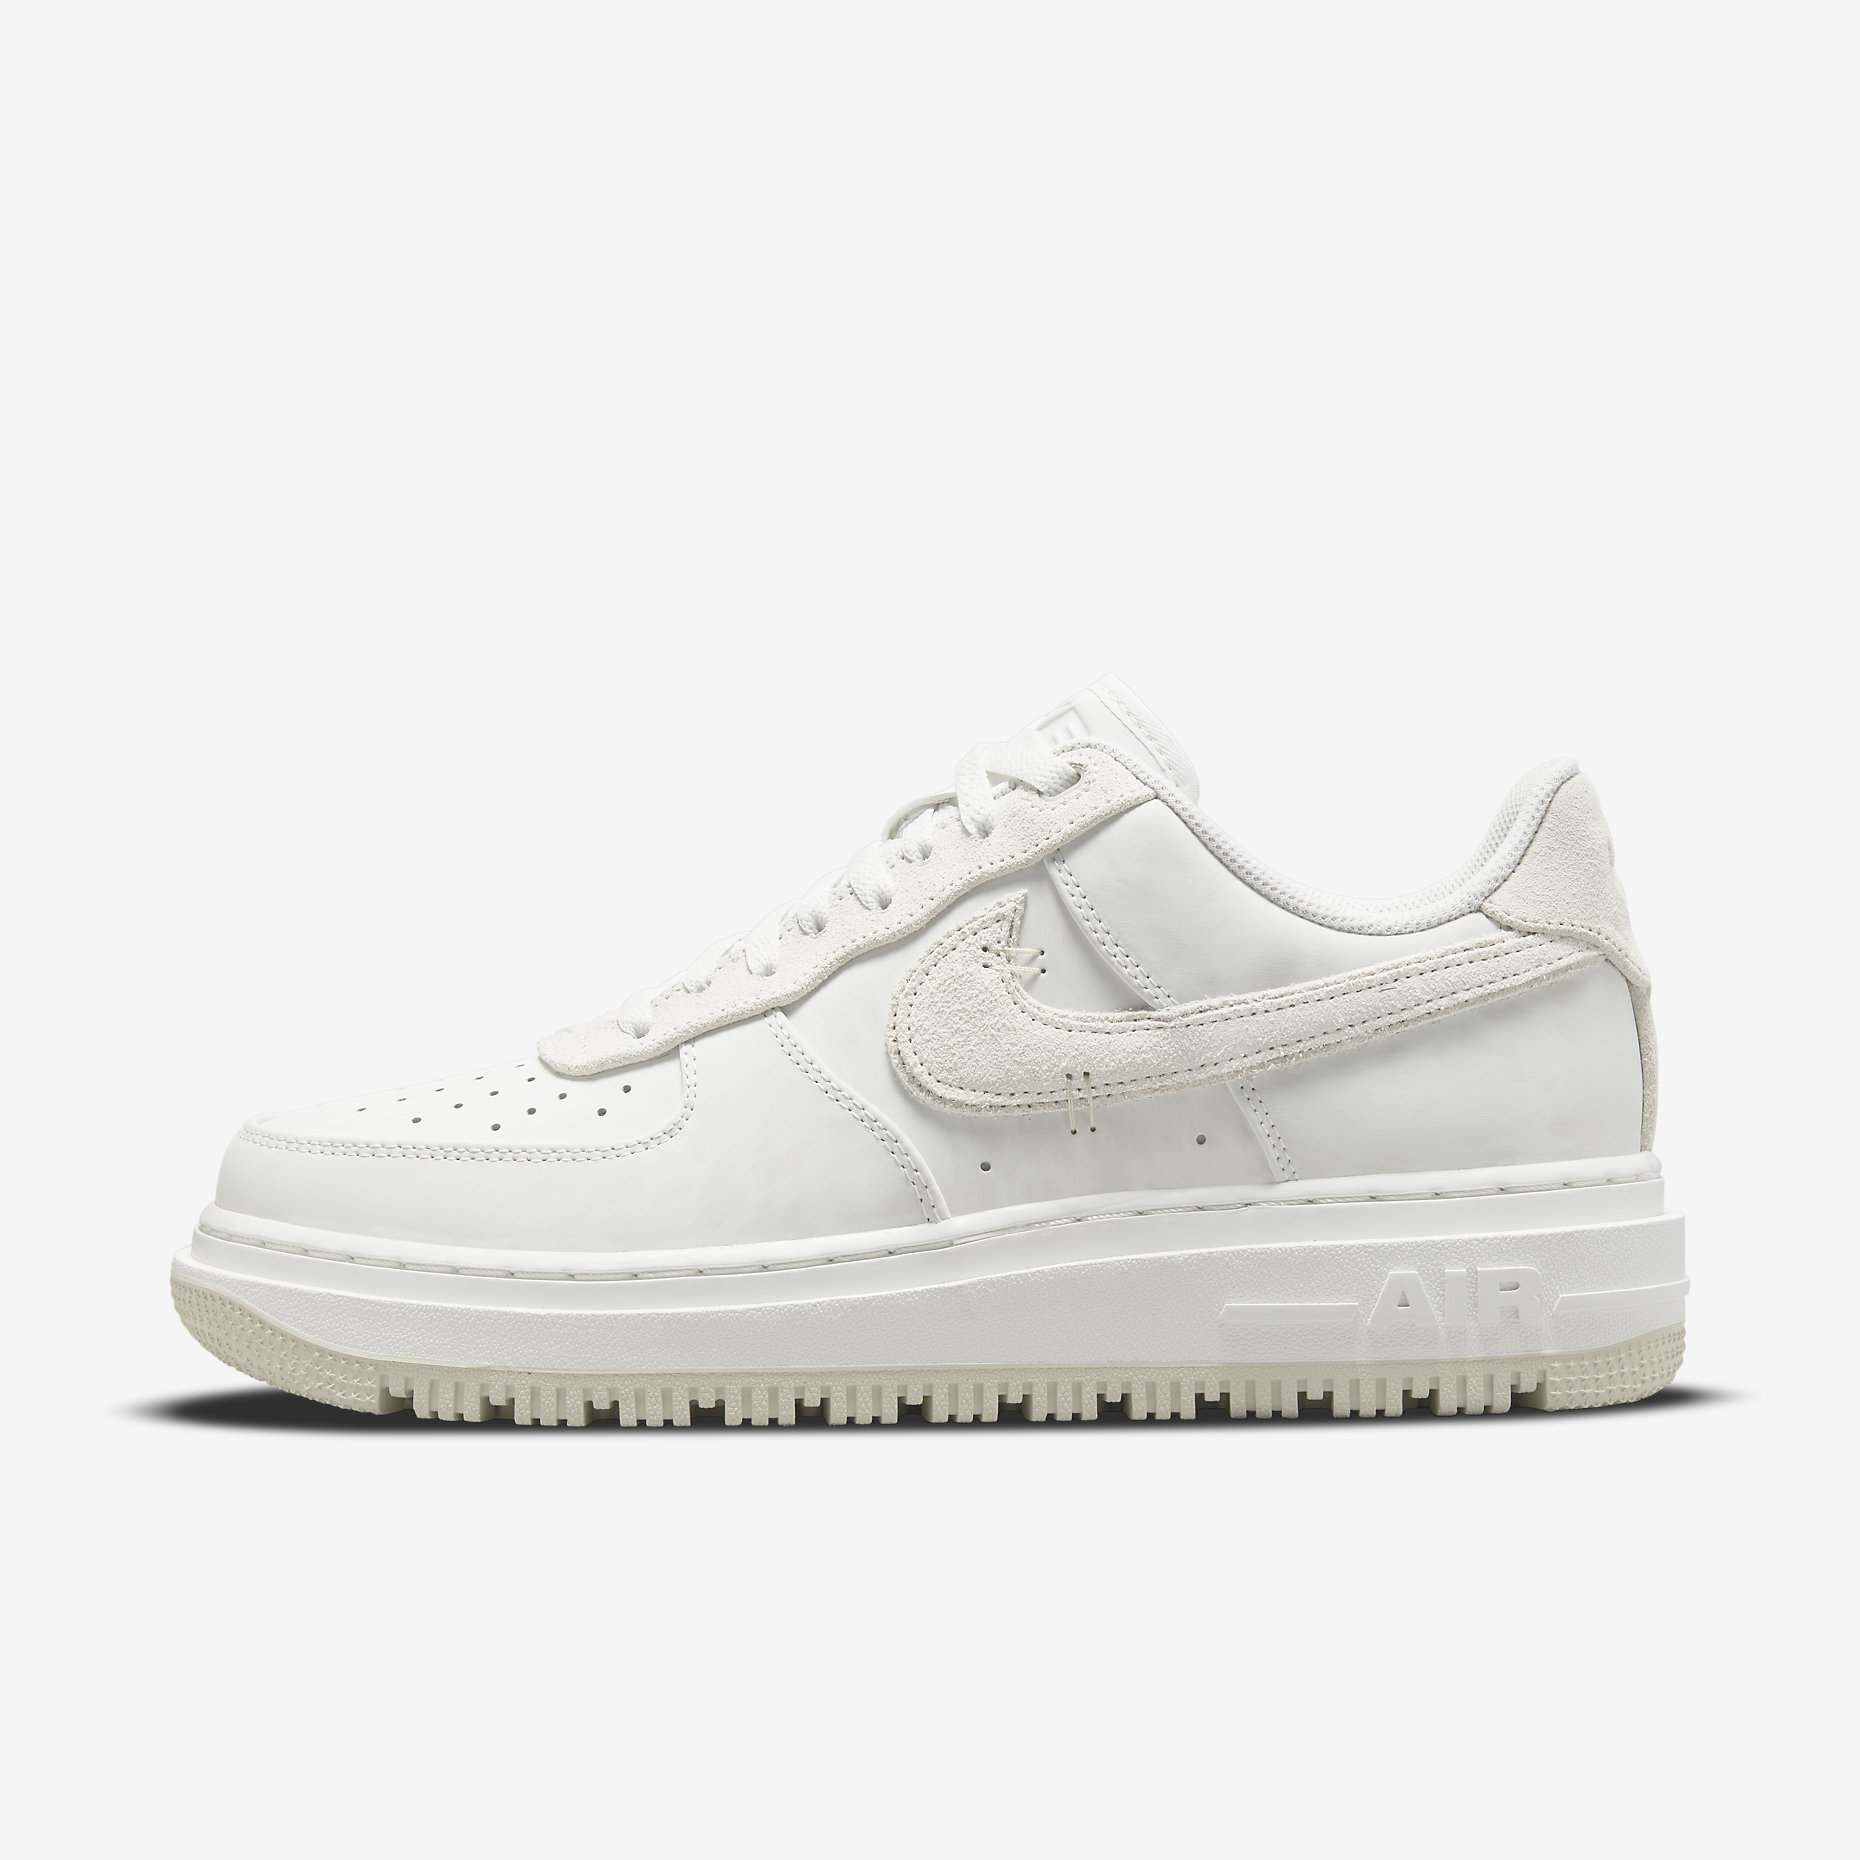 Nike Air Force 1 Luxe 'Summit White'